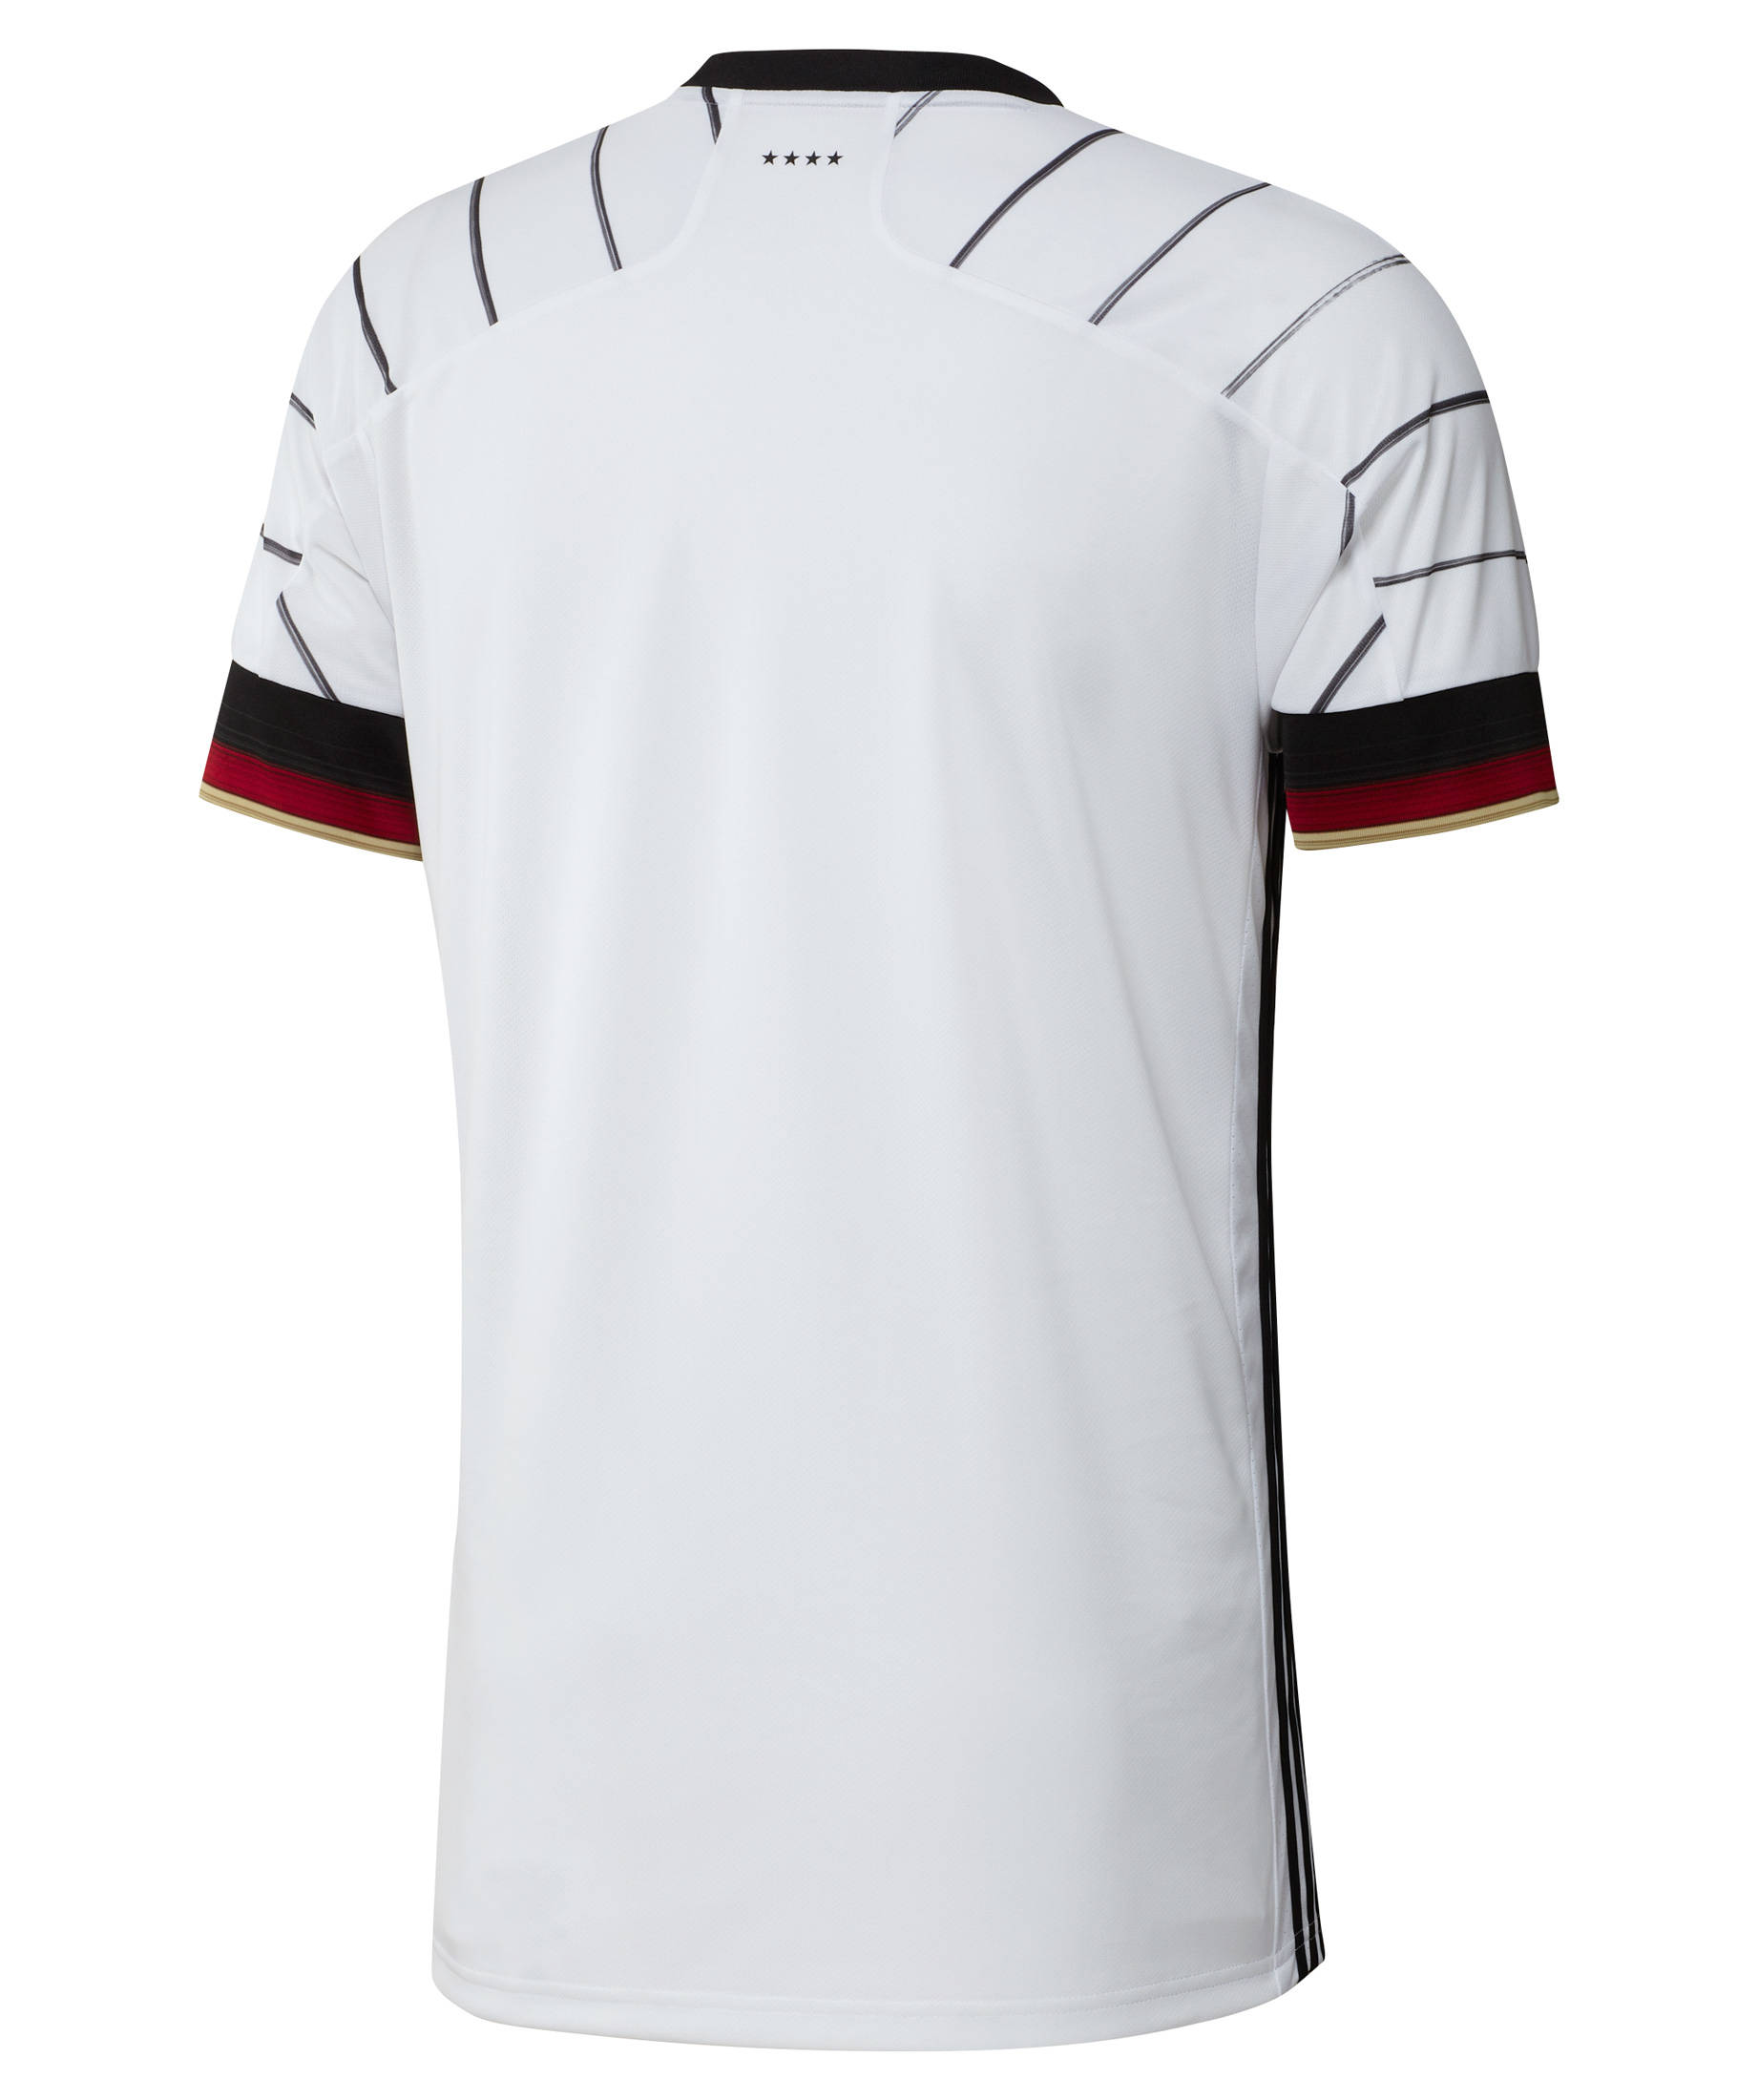 Nationaltrikot Deutschland Em 2021